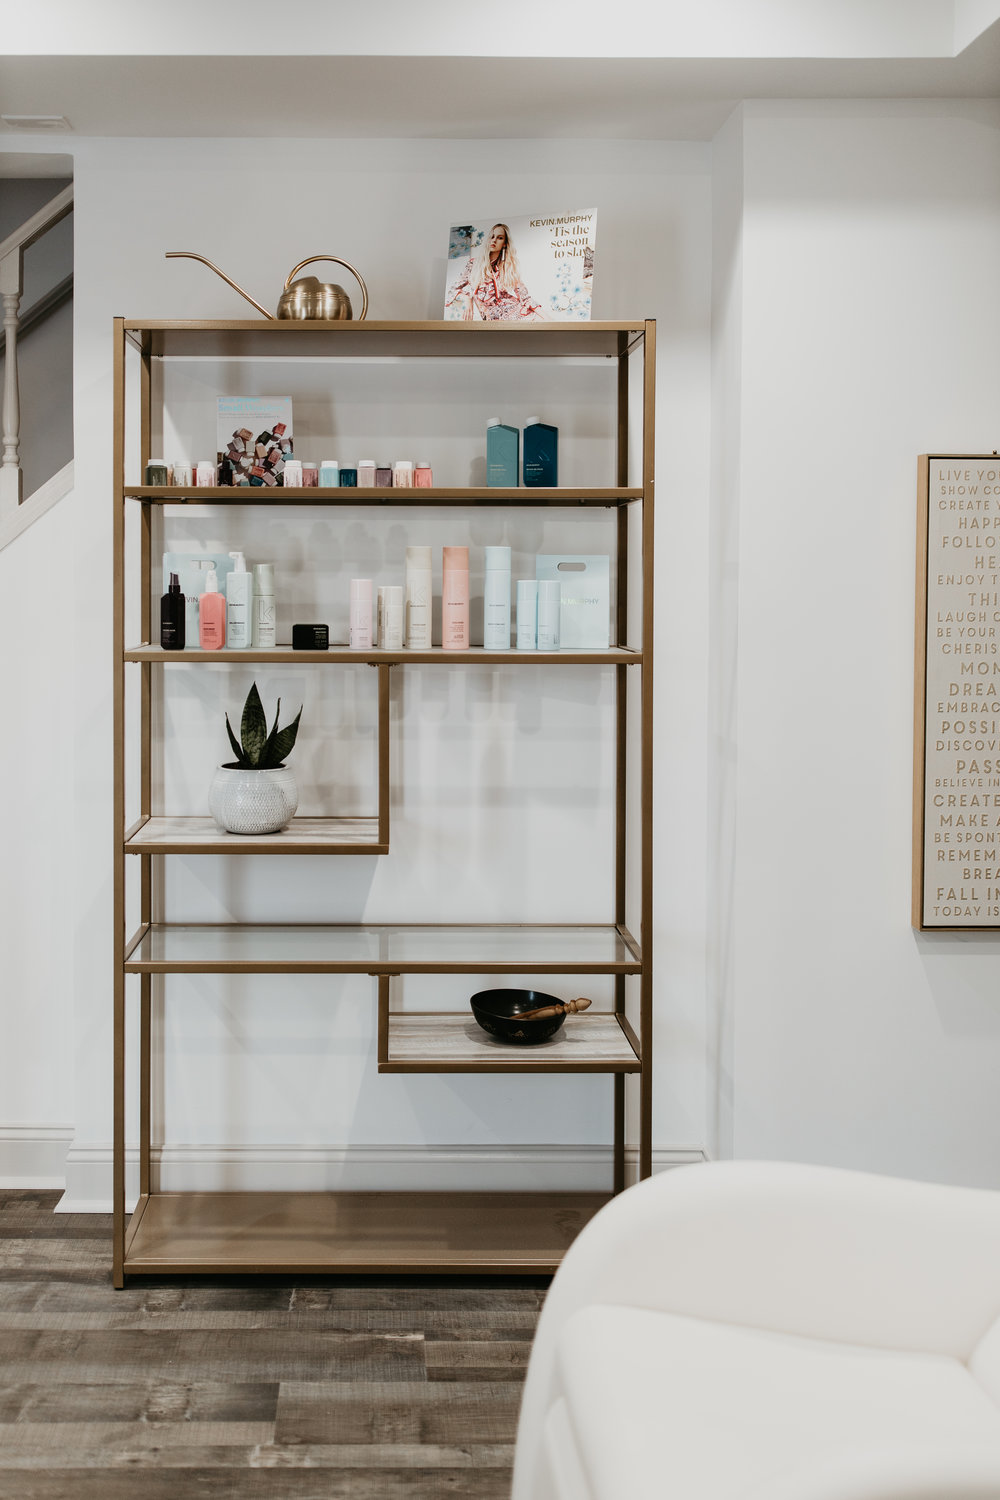 - With an emphasis on natural beauty, AtHome Beauty uses only the highest quality, all natural, cruelty-free products in our services including Kevin Murphy hair care and Oribe styling products. We believe beauty should do no harm- to our own bodies or the world we live in.